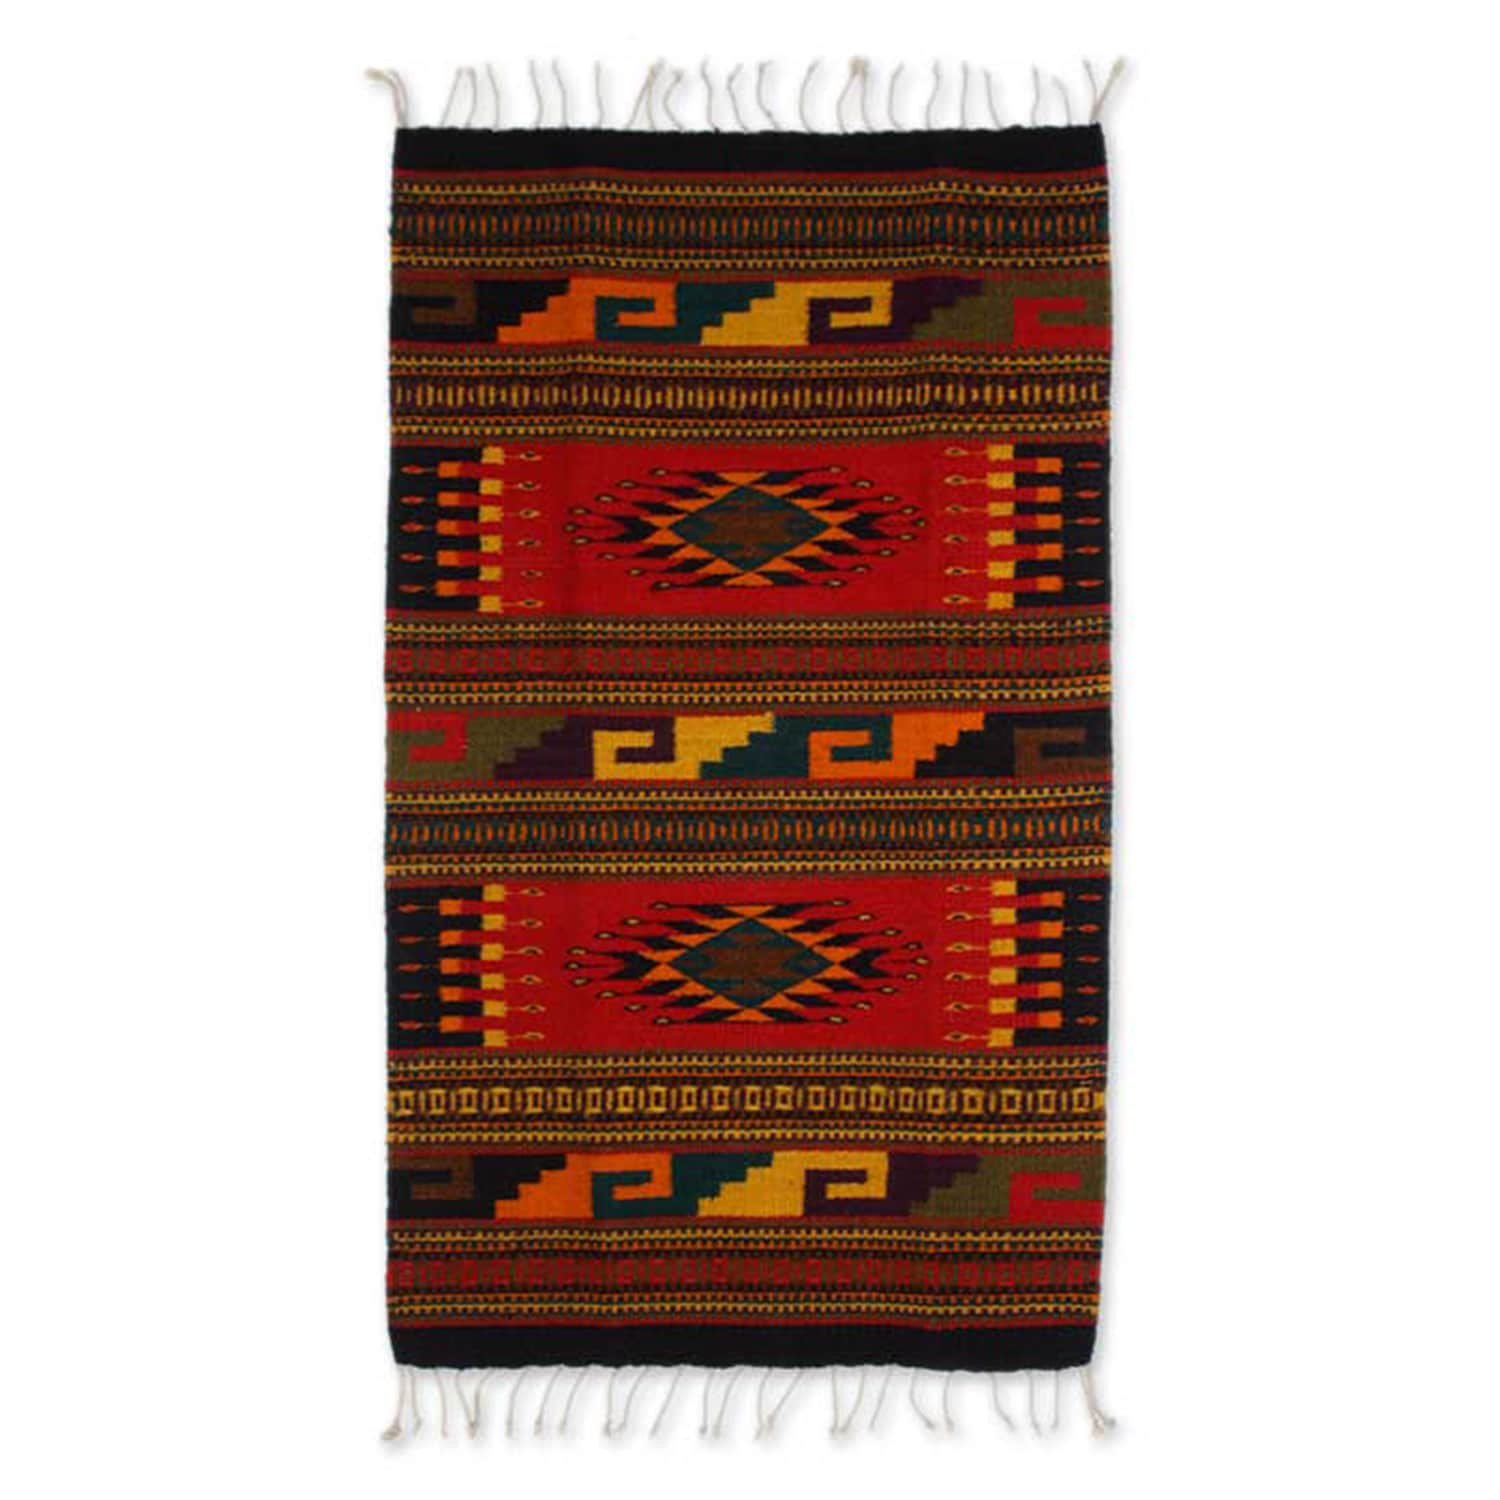 Handmade Zapotec Wool Our Traditions Rug (2x35) (Mexico) - 2x35 (Solid)